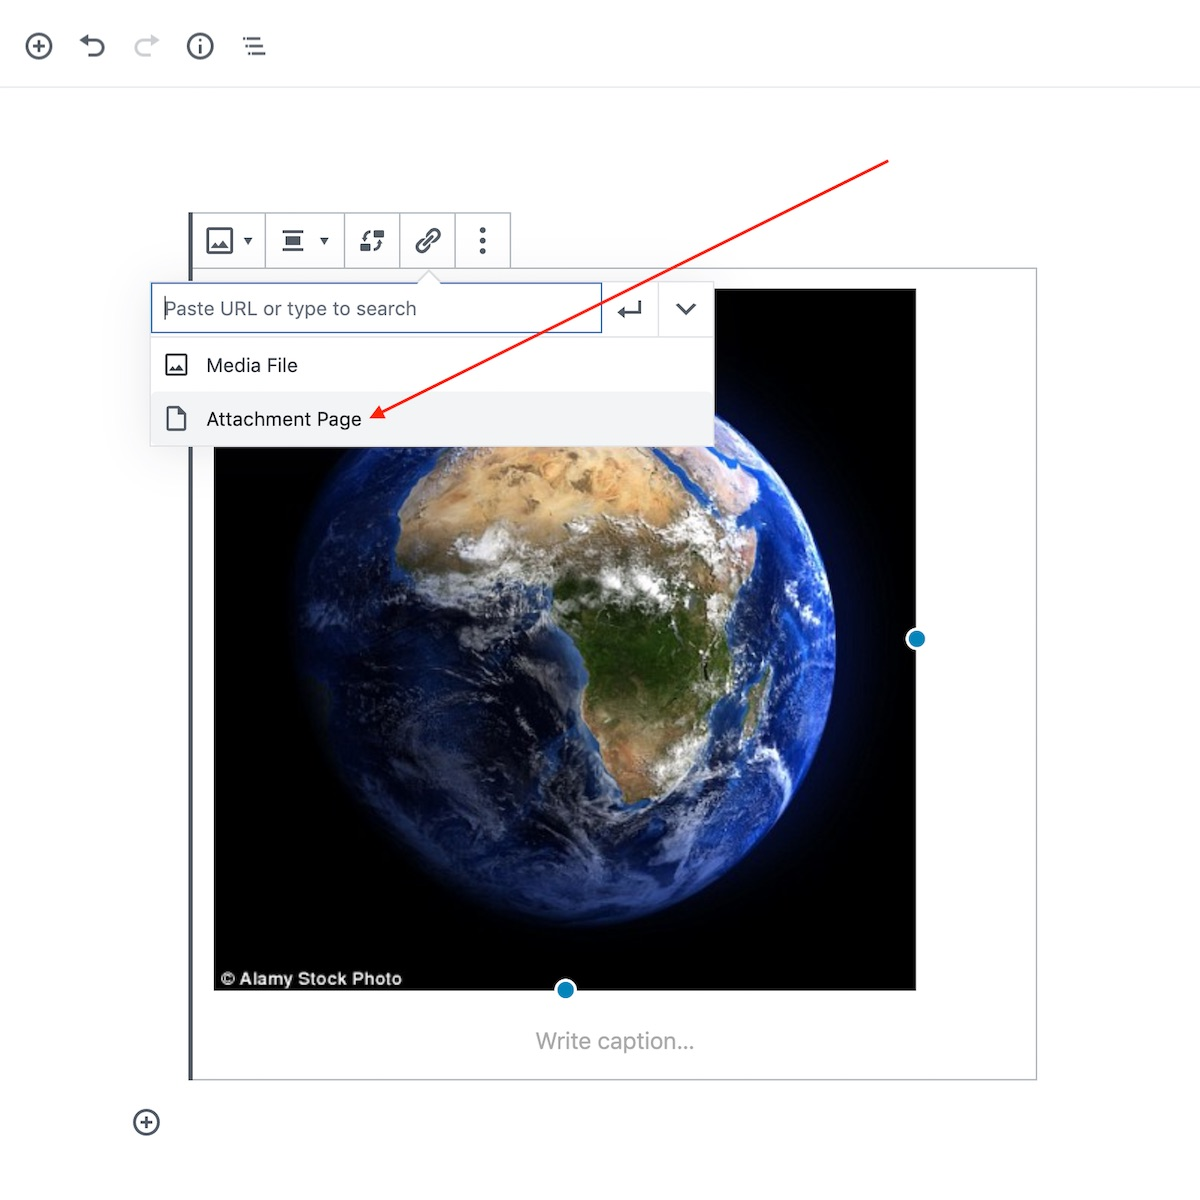 Linking to an Attachment Page in the Block Editor